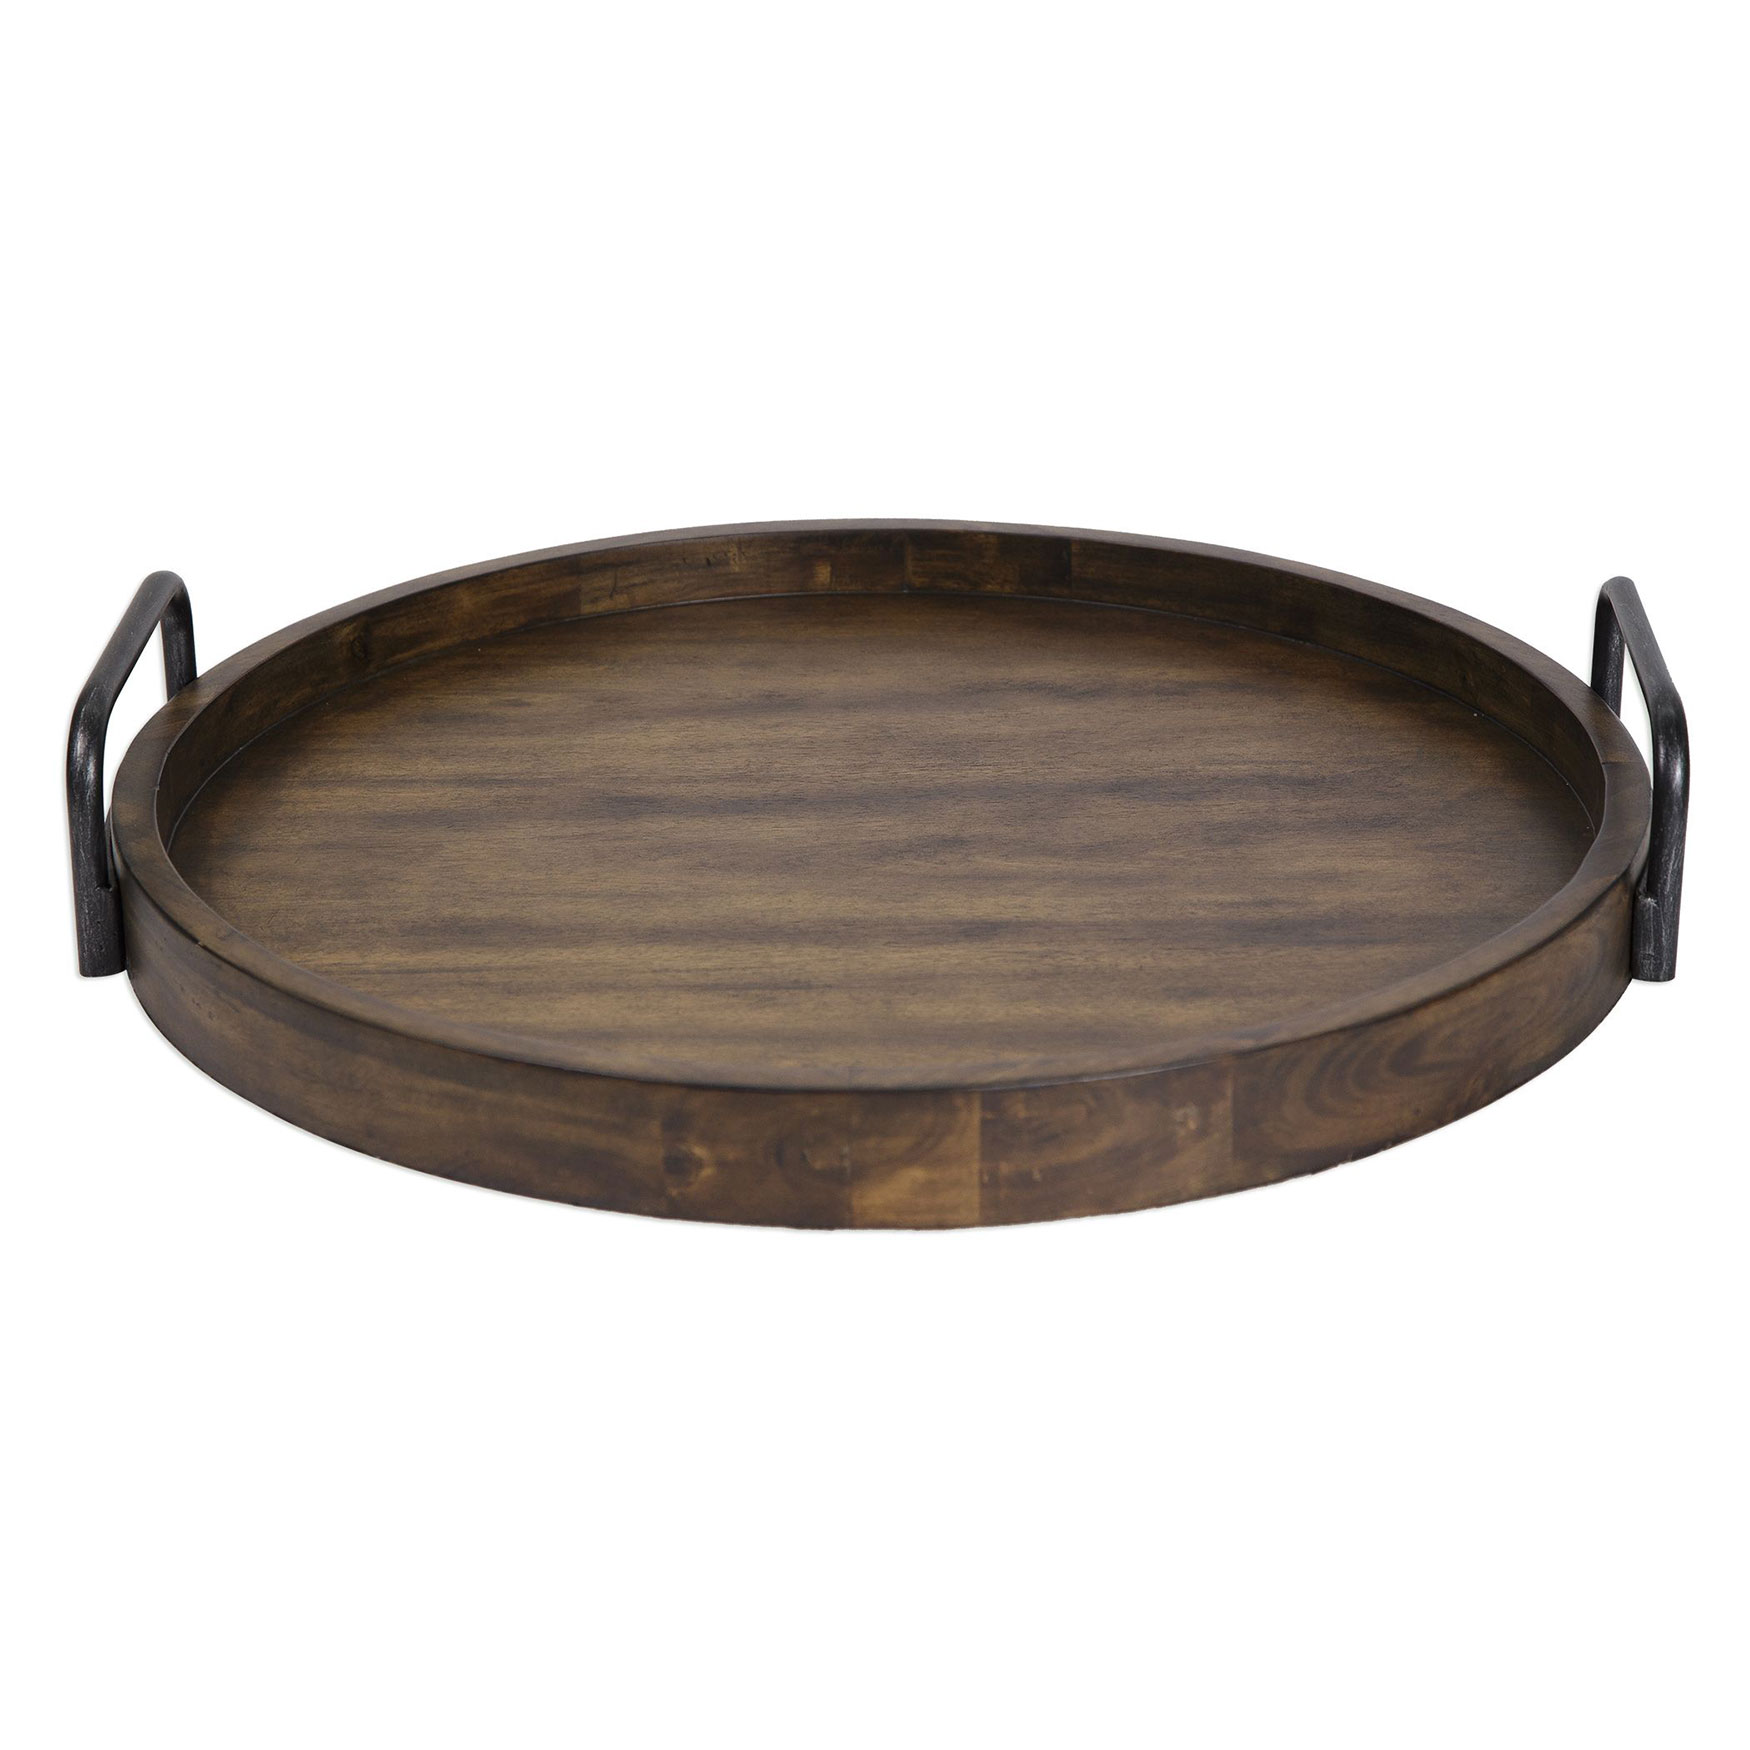 Reine Round Wooden Tray, WOOD